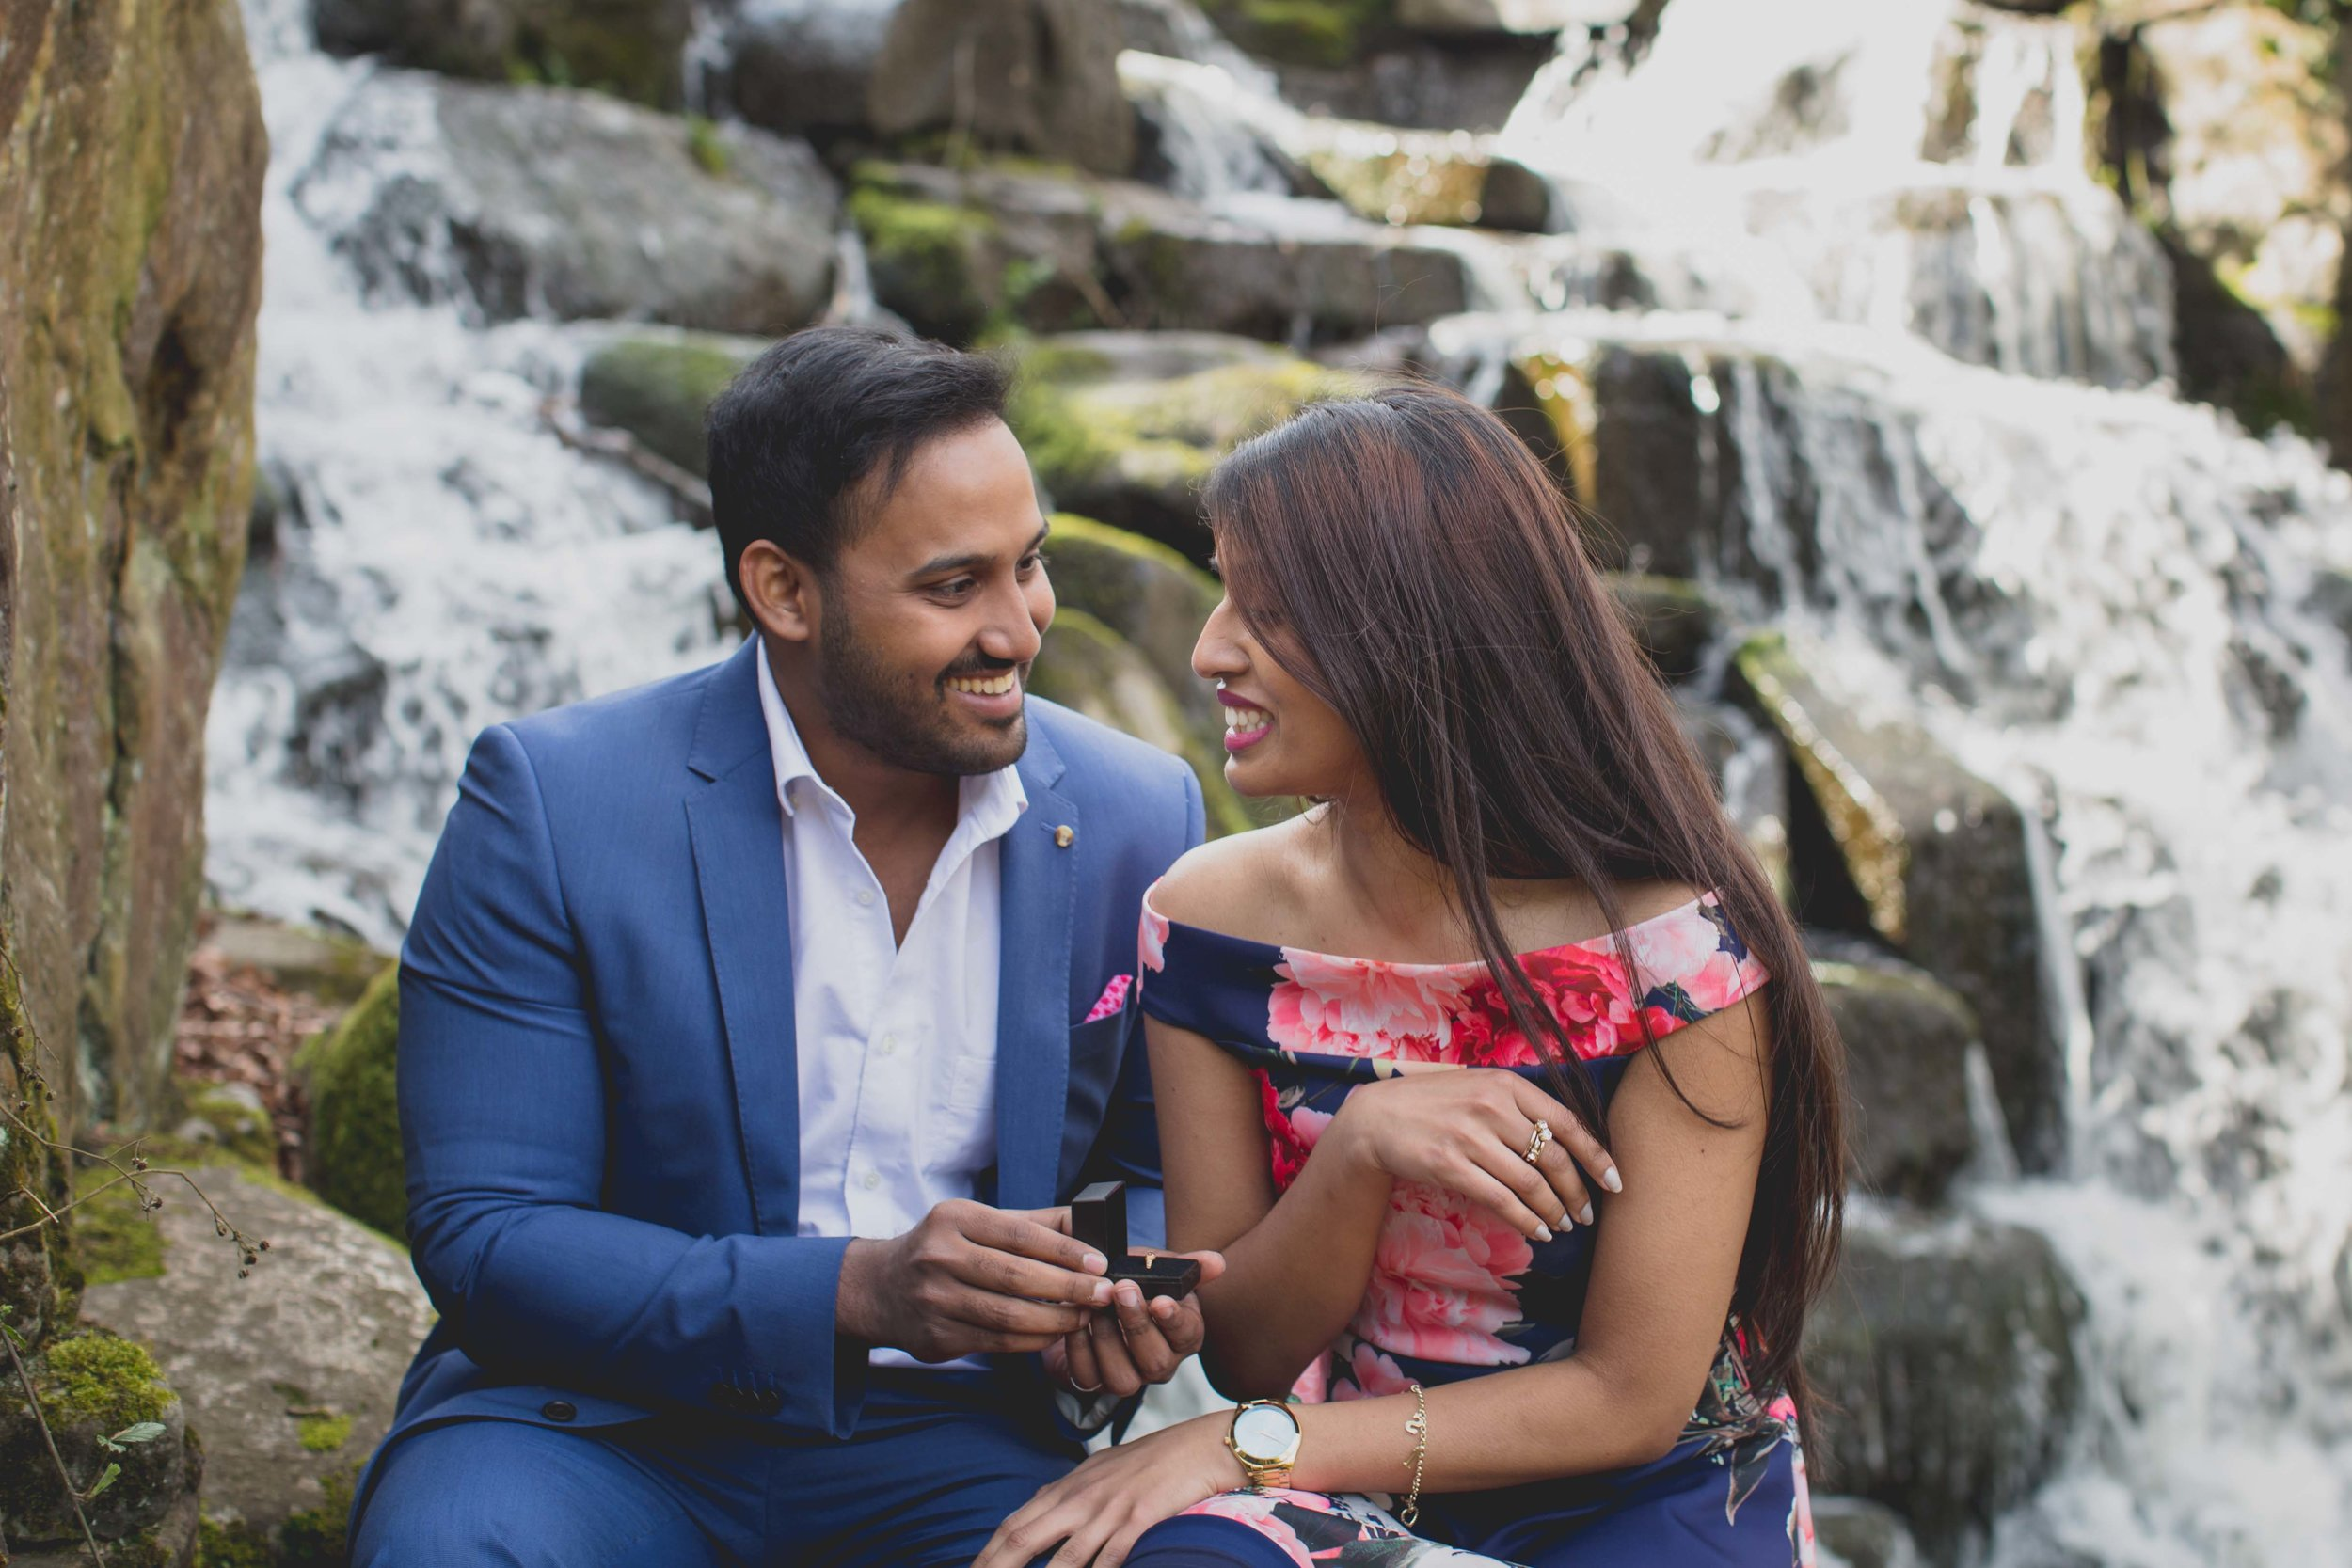 Virginia-waters-windsor-pre-wedding-engagement-shoot-female-asian-wedding-photographer-natalia-smith-photography-12.jpg